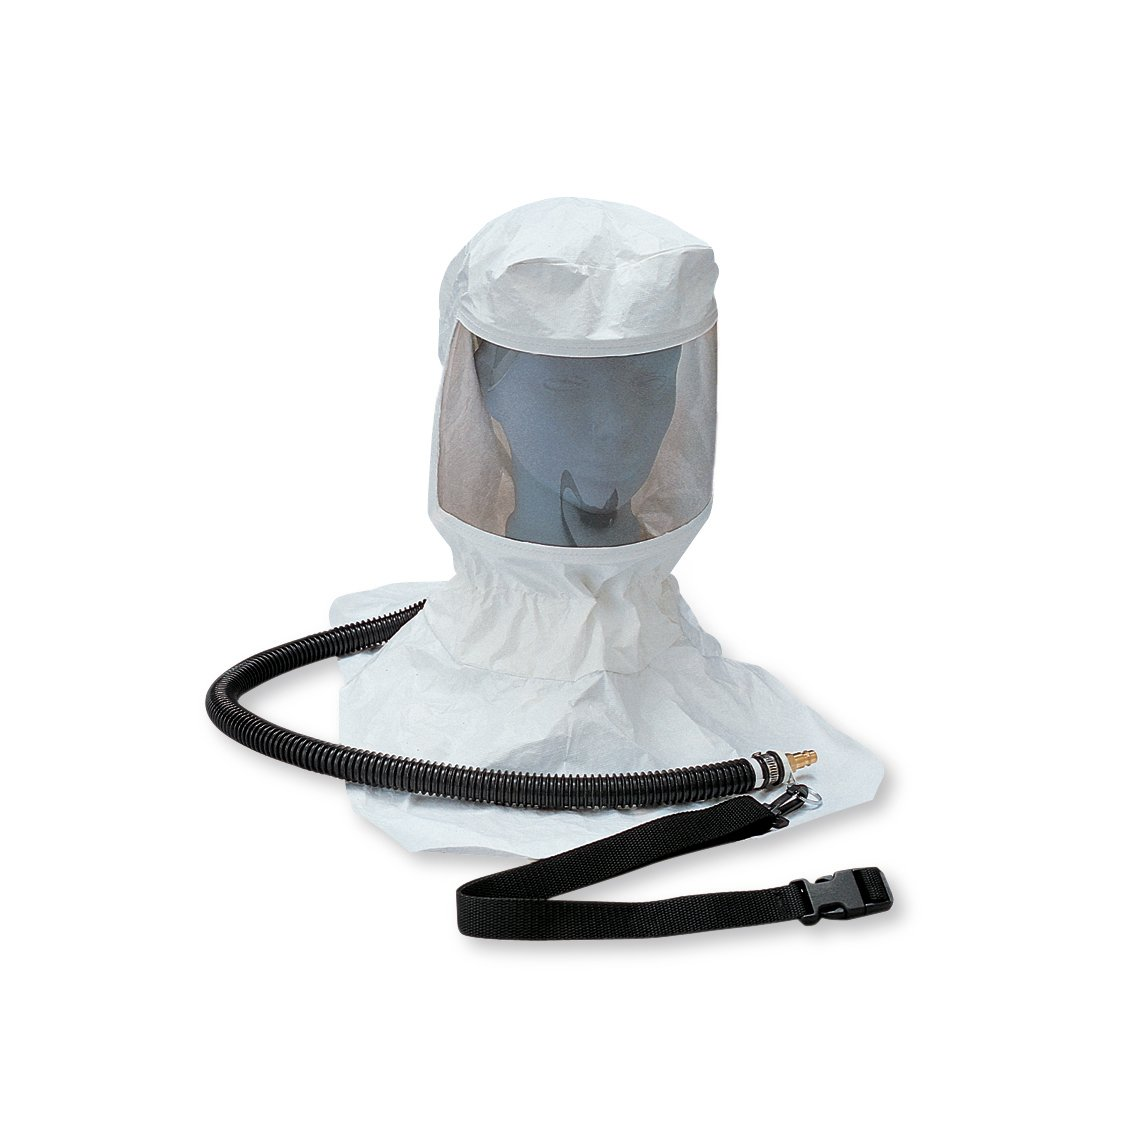 Allegro Industries 9910 Tyvek Hood CF SAR Assembly, Includes OBAC Fitting, Belt, Clip and Suspension, Standard by Allegro Industries